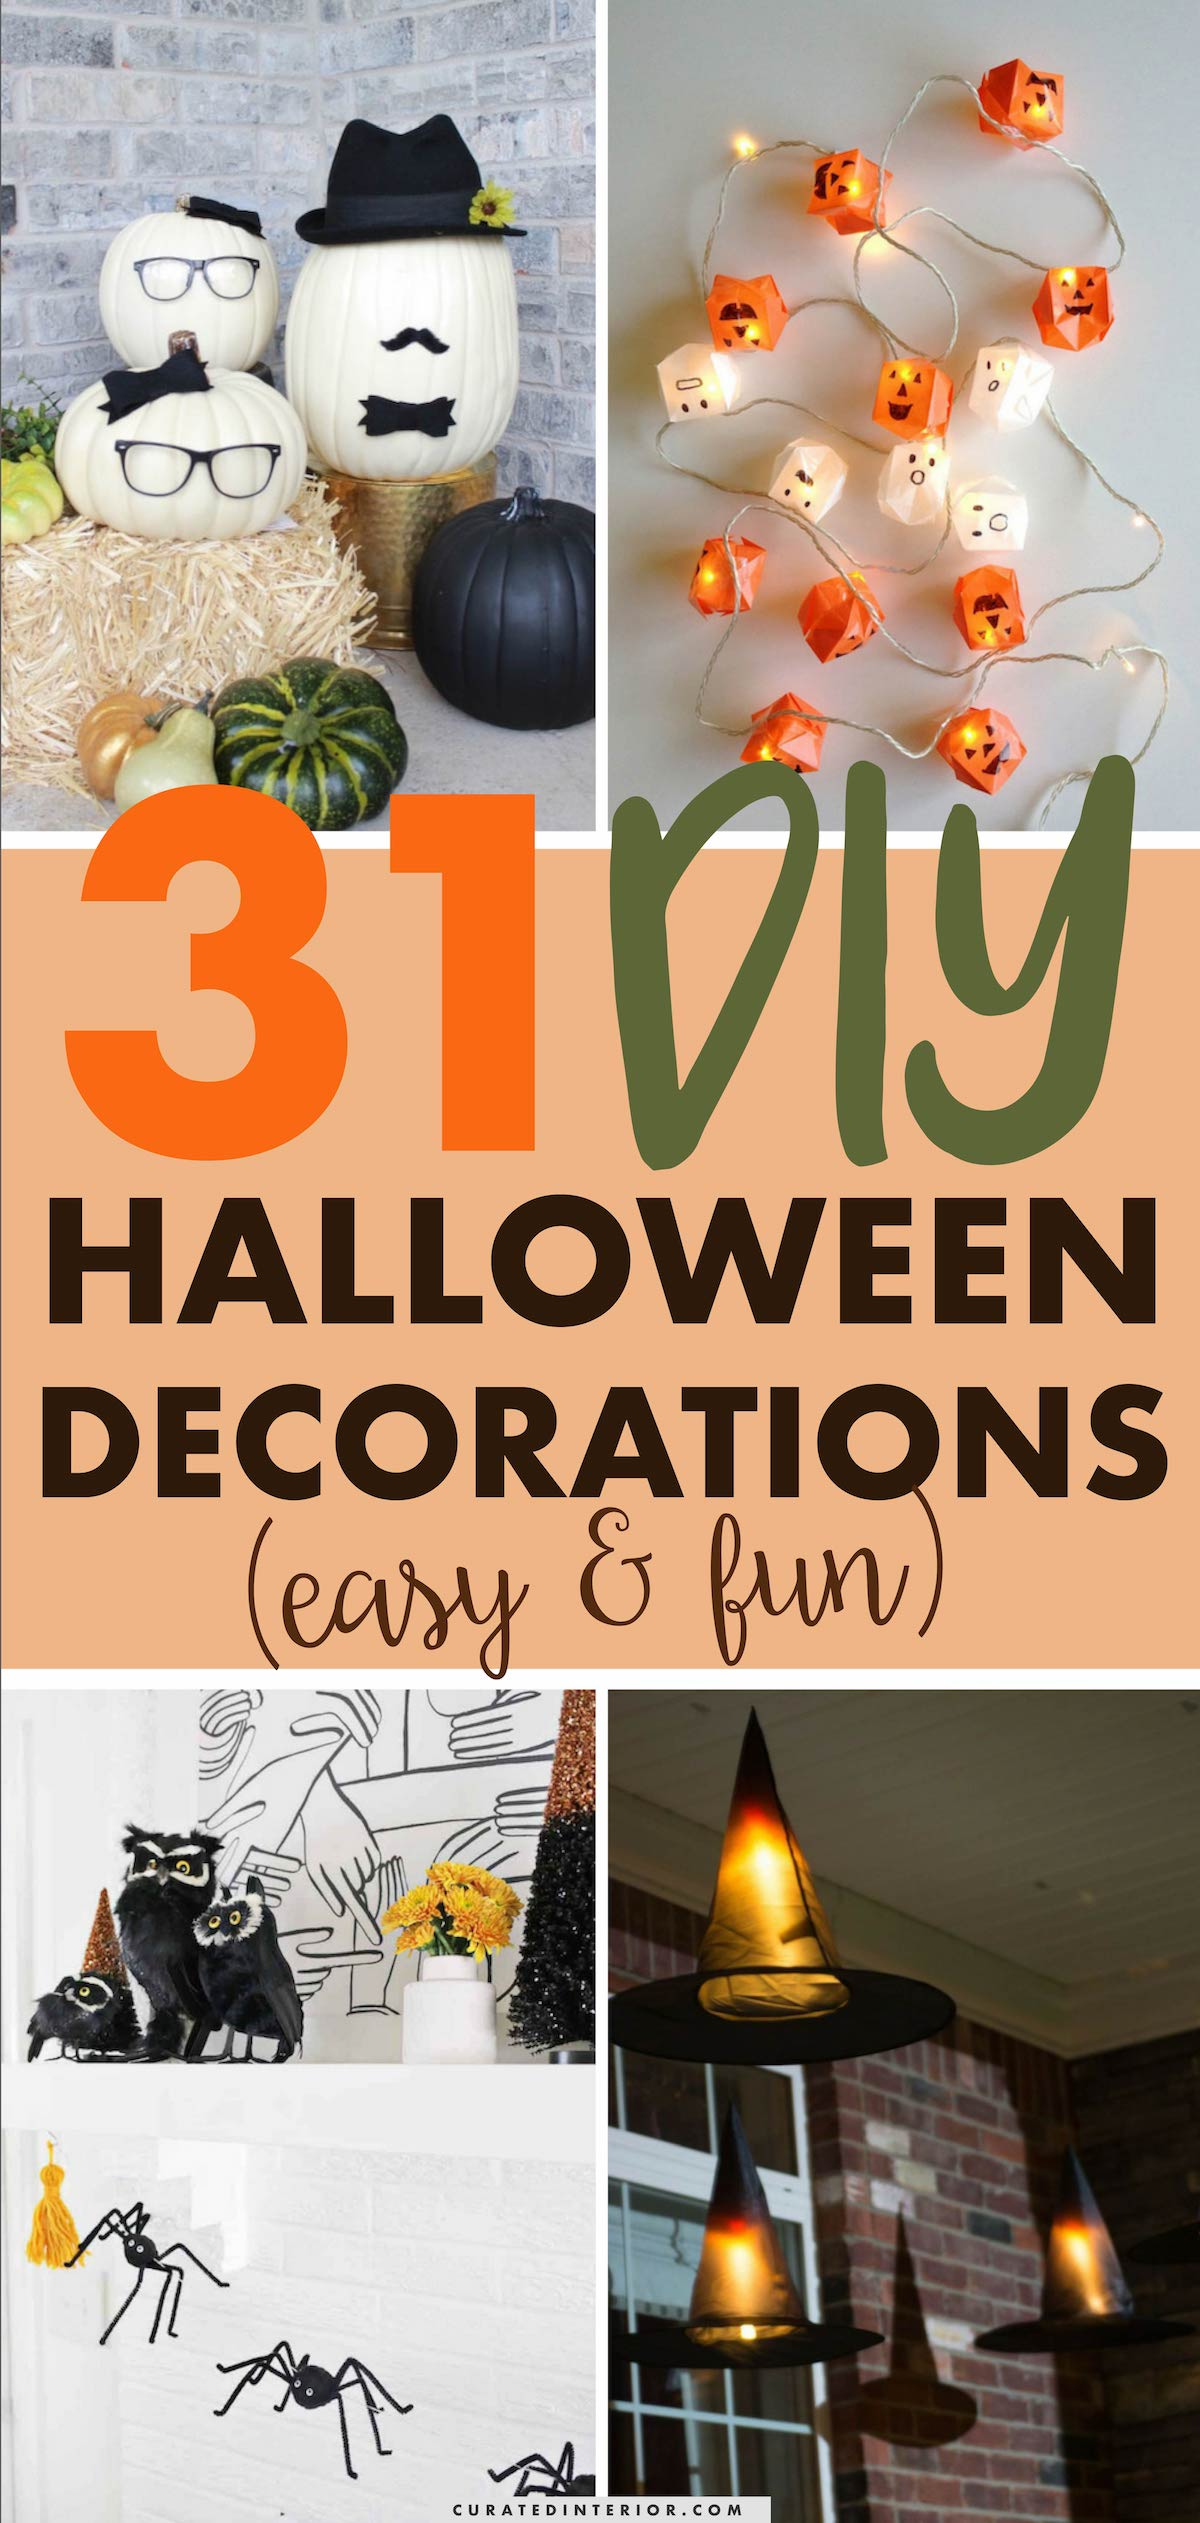 31 DIY Halloween Decorations That Are Easy And FUN